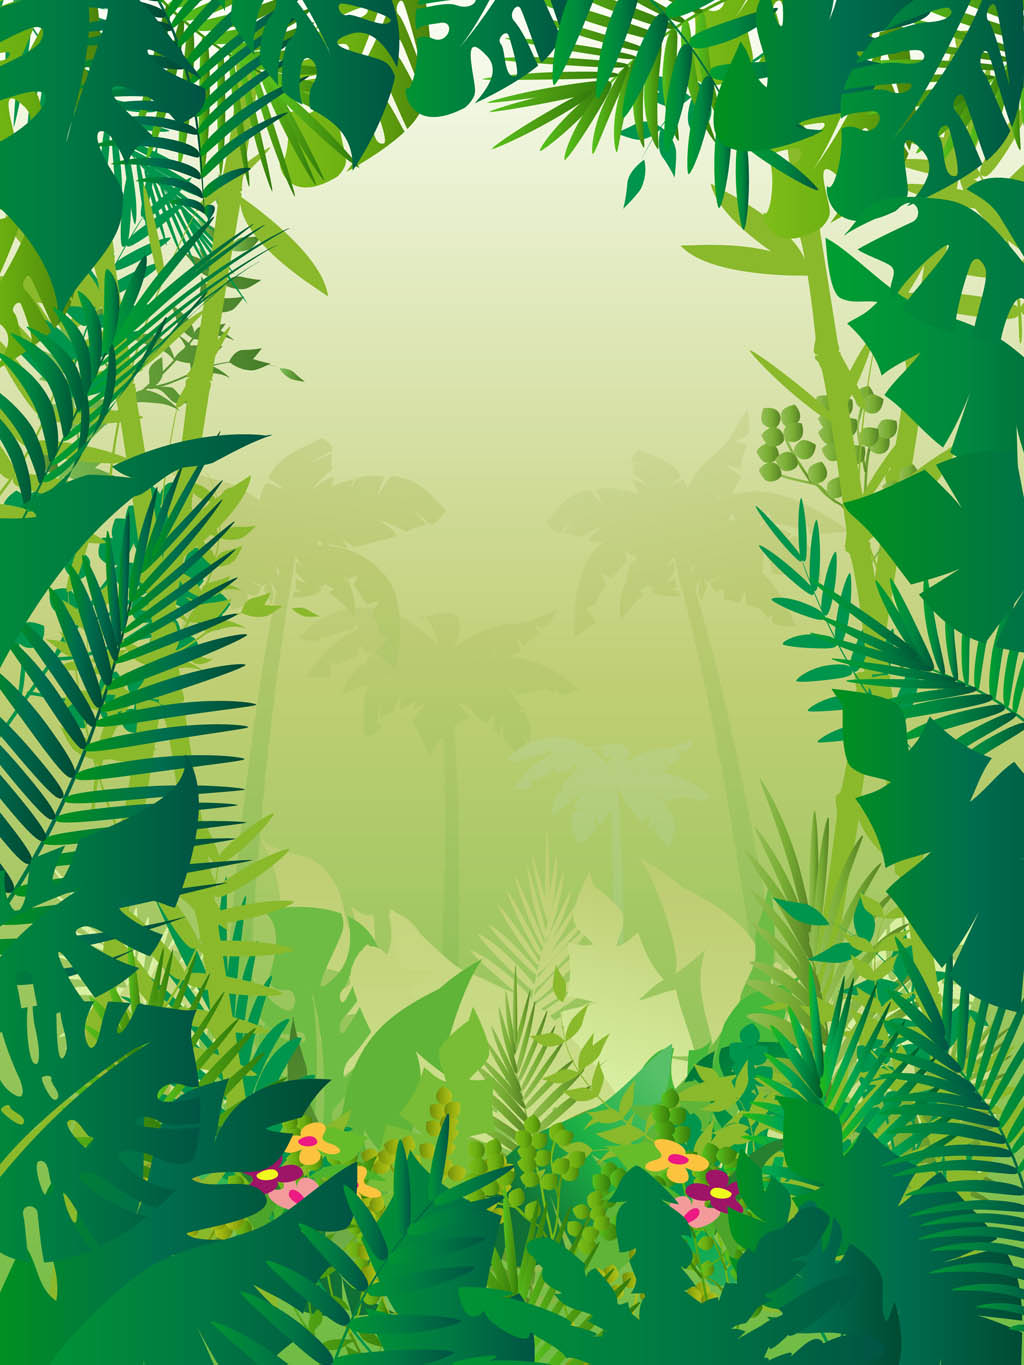 Download free clipart jungle pictures becuo photo ppt backgrounds clipart jungle pictures becuo photo ppt backgrounds download toneelgroepblik Images